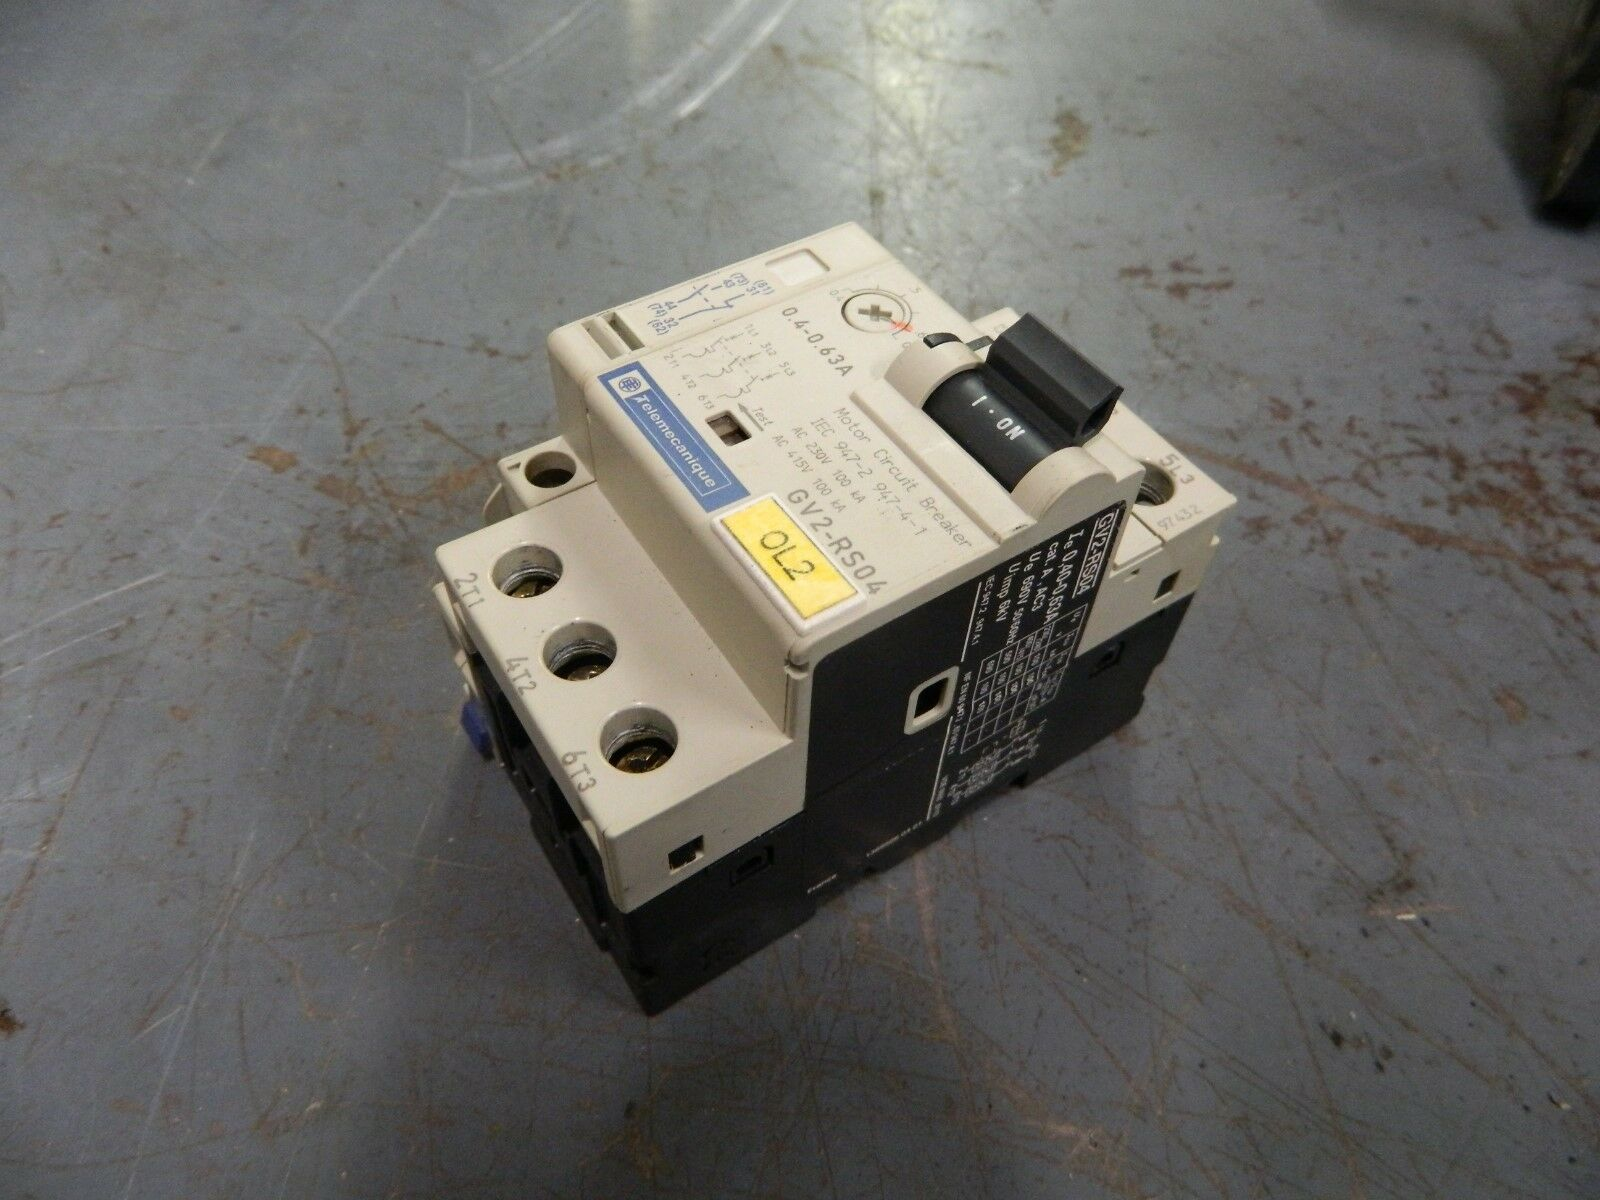 Telemecanique Motor Circuit Breaker, GV2-RS04, 0.4-0.63A, W/ GV2-AN11, Used